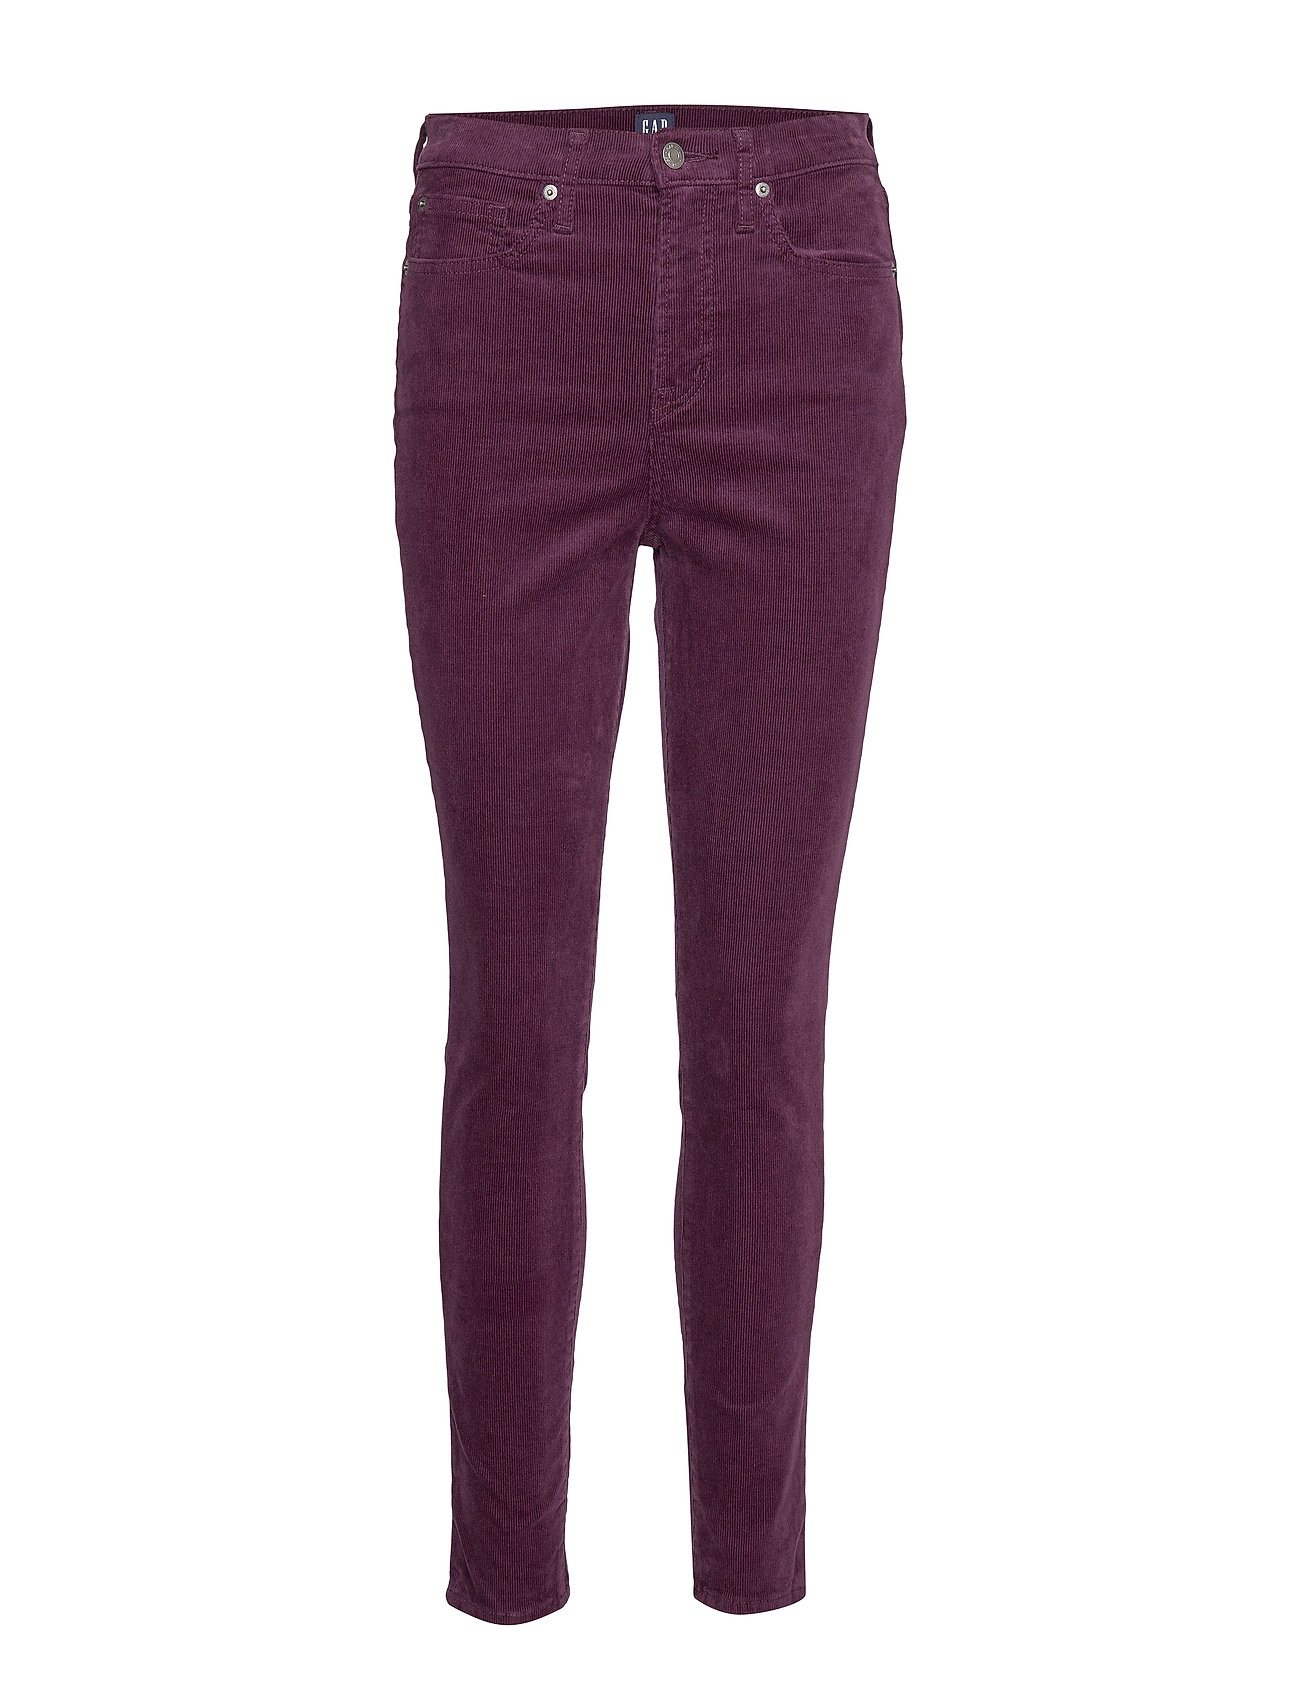 GAP High Rise True Skinny Cords with Secret Smoothing Pockets - RICH WINE